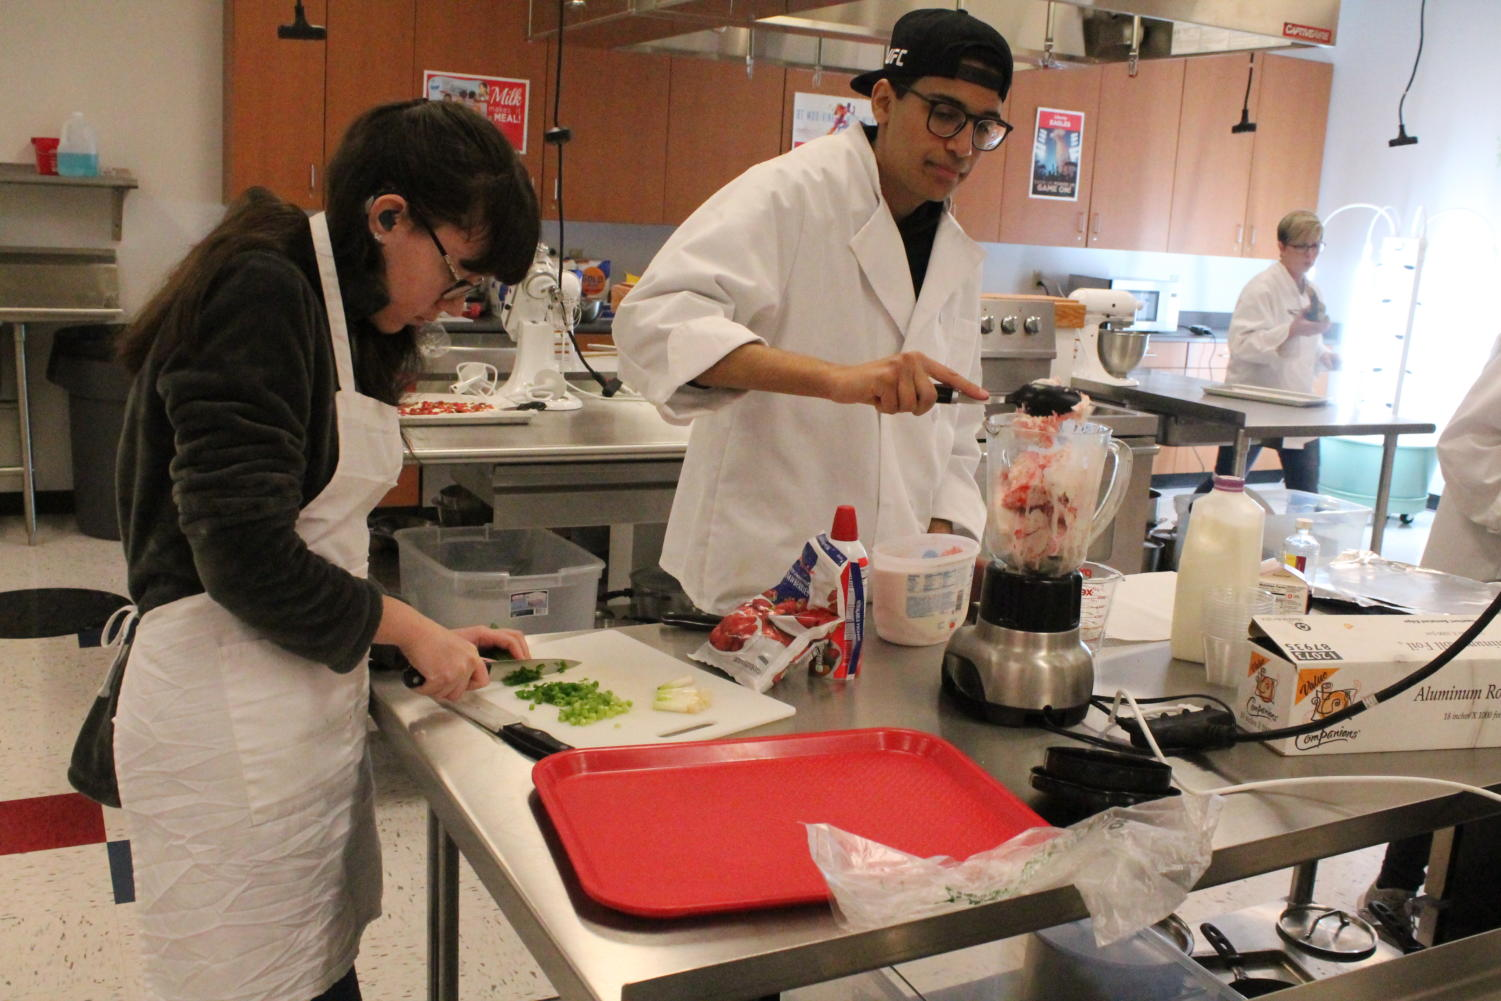 Students prepare meals for staff members on Valentine's Day.